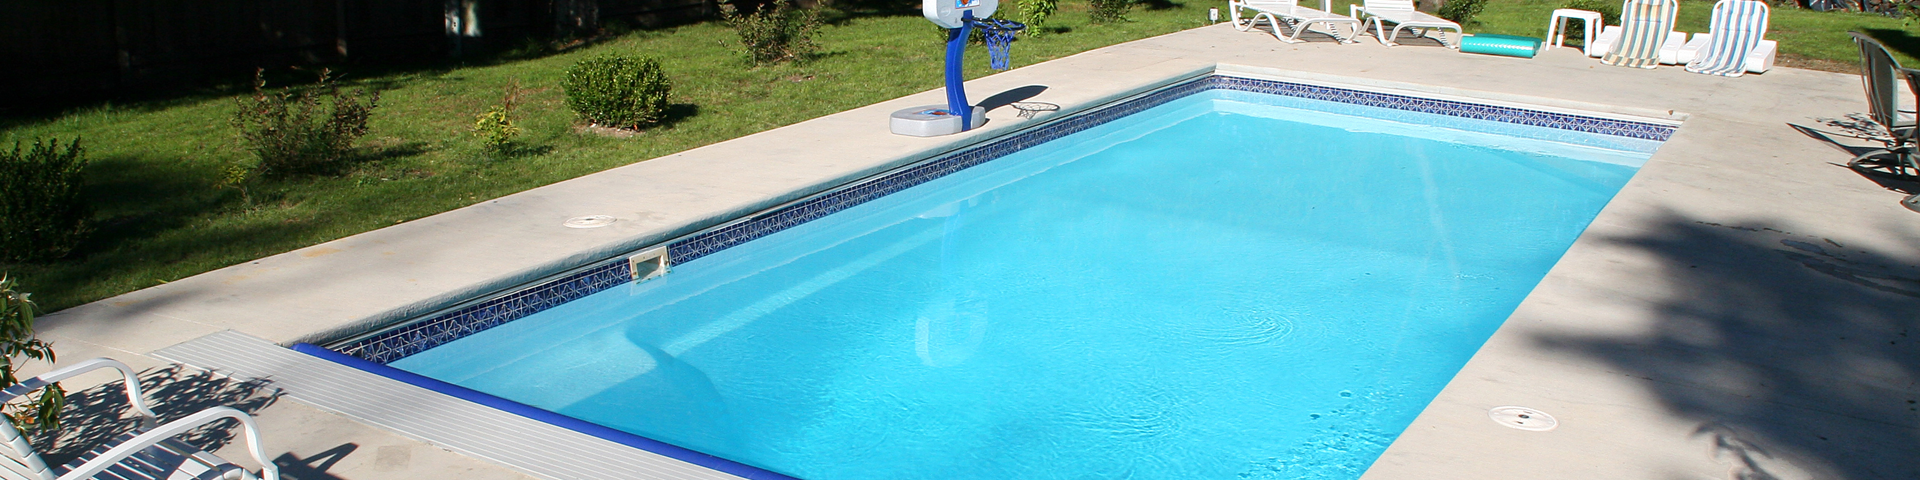 Rectangle Fiberglass Pools Pro Edge Pools